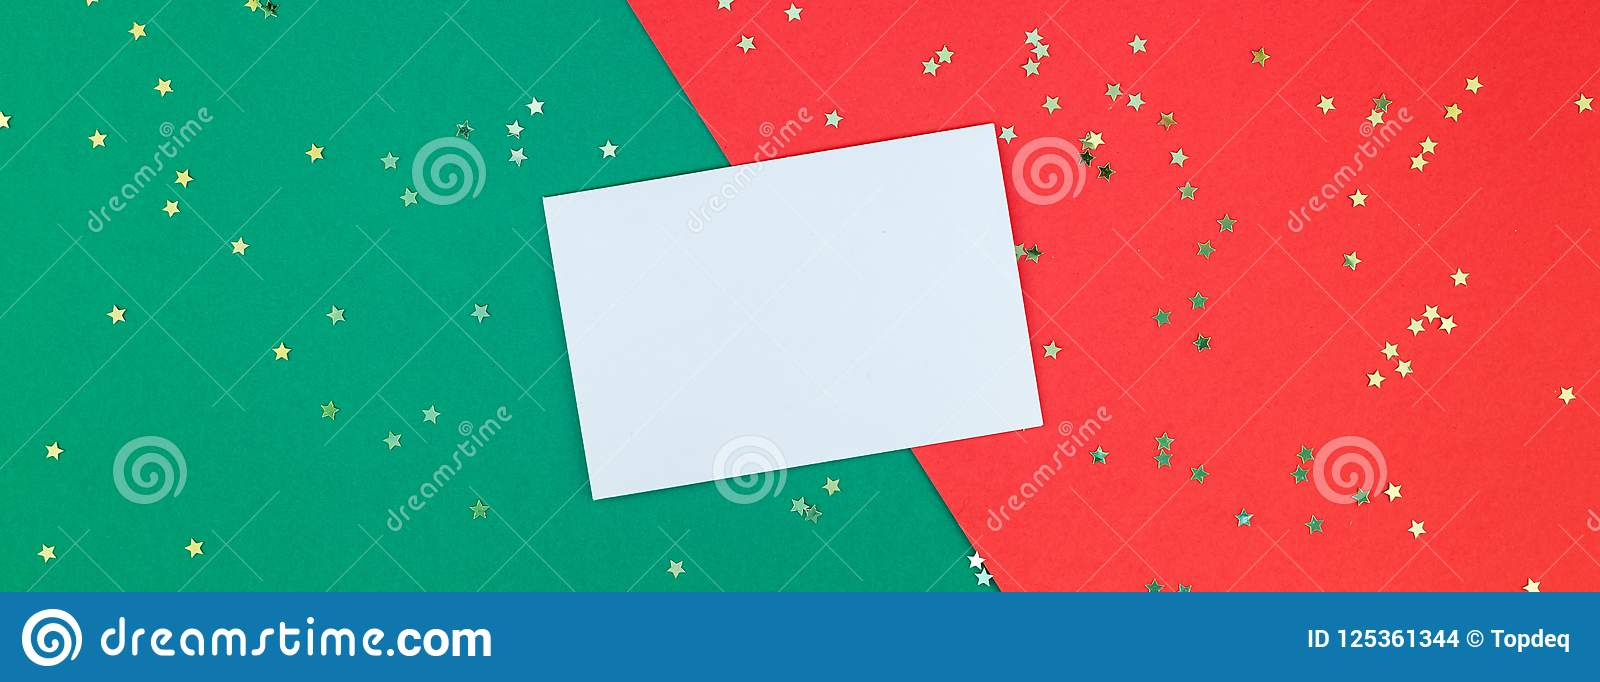 New year or christmas greeting letter mockup stock photo image of download new year or christmas greeting letter mockup stock photo image of creative blank m4hsunfo